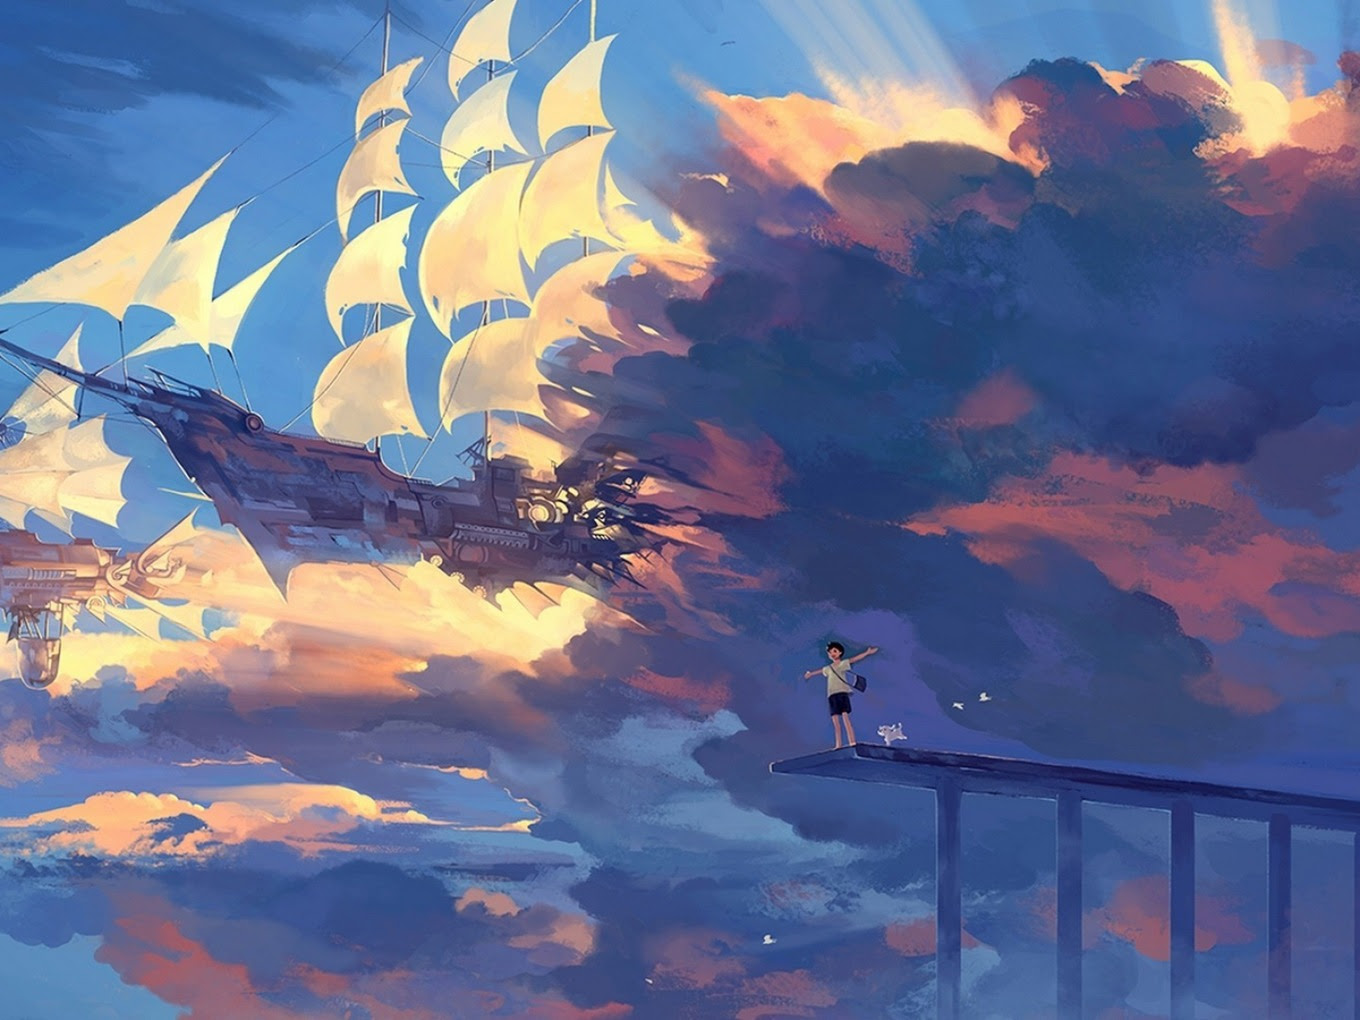 hanyijie_sky_scenery_ship_anime_art_104162_1600x1200